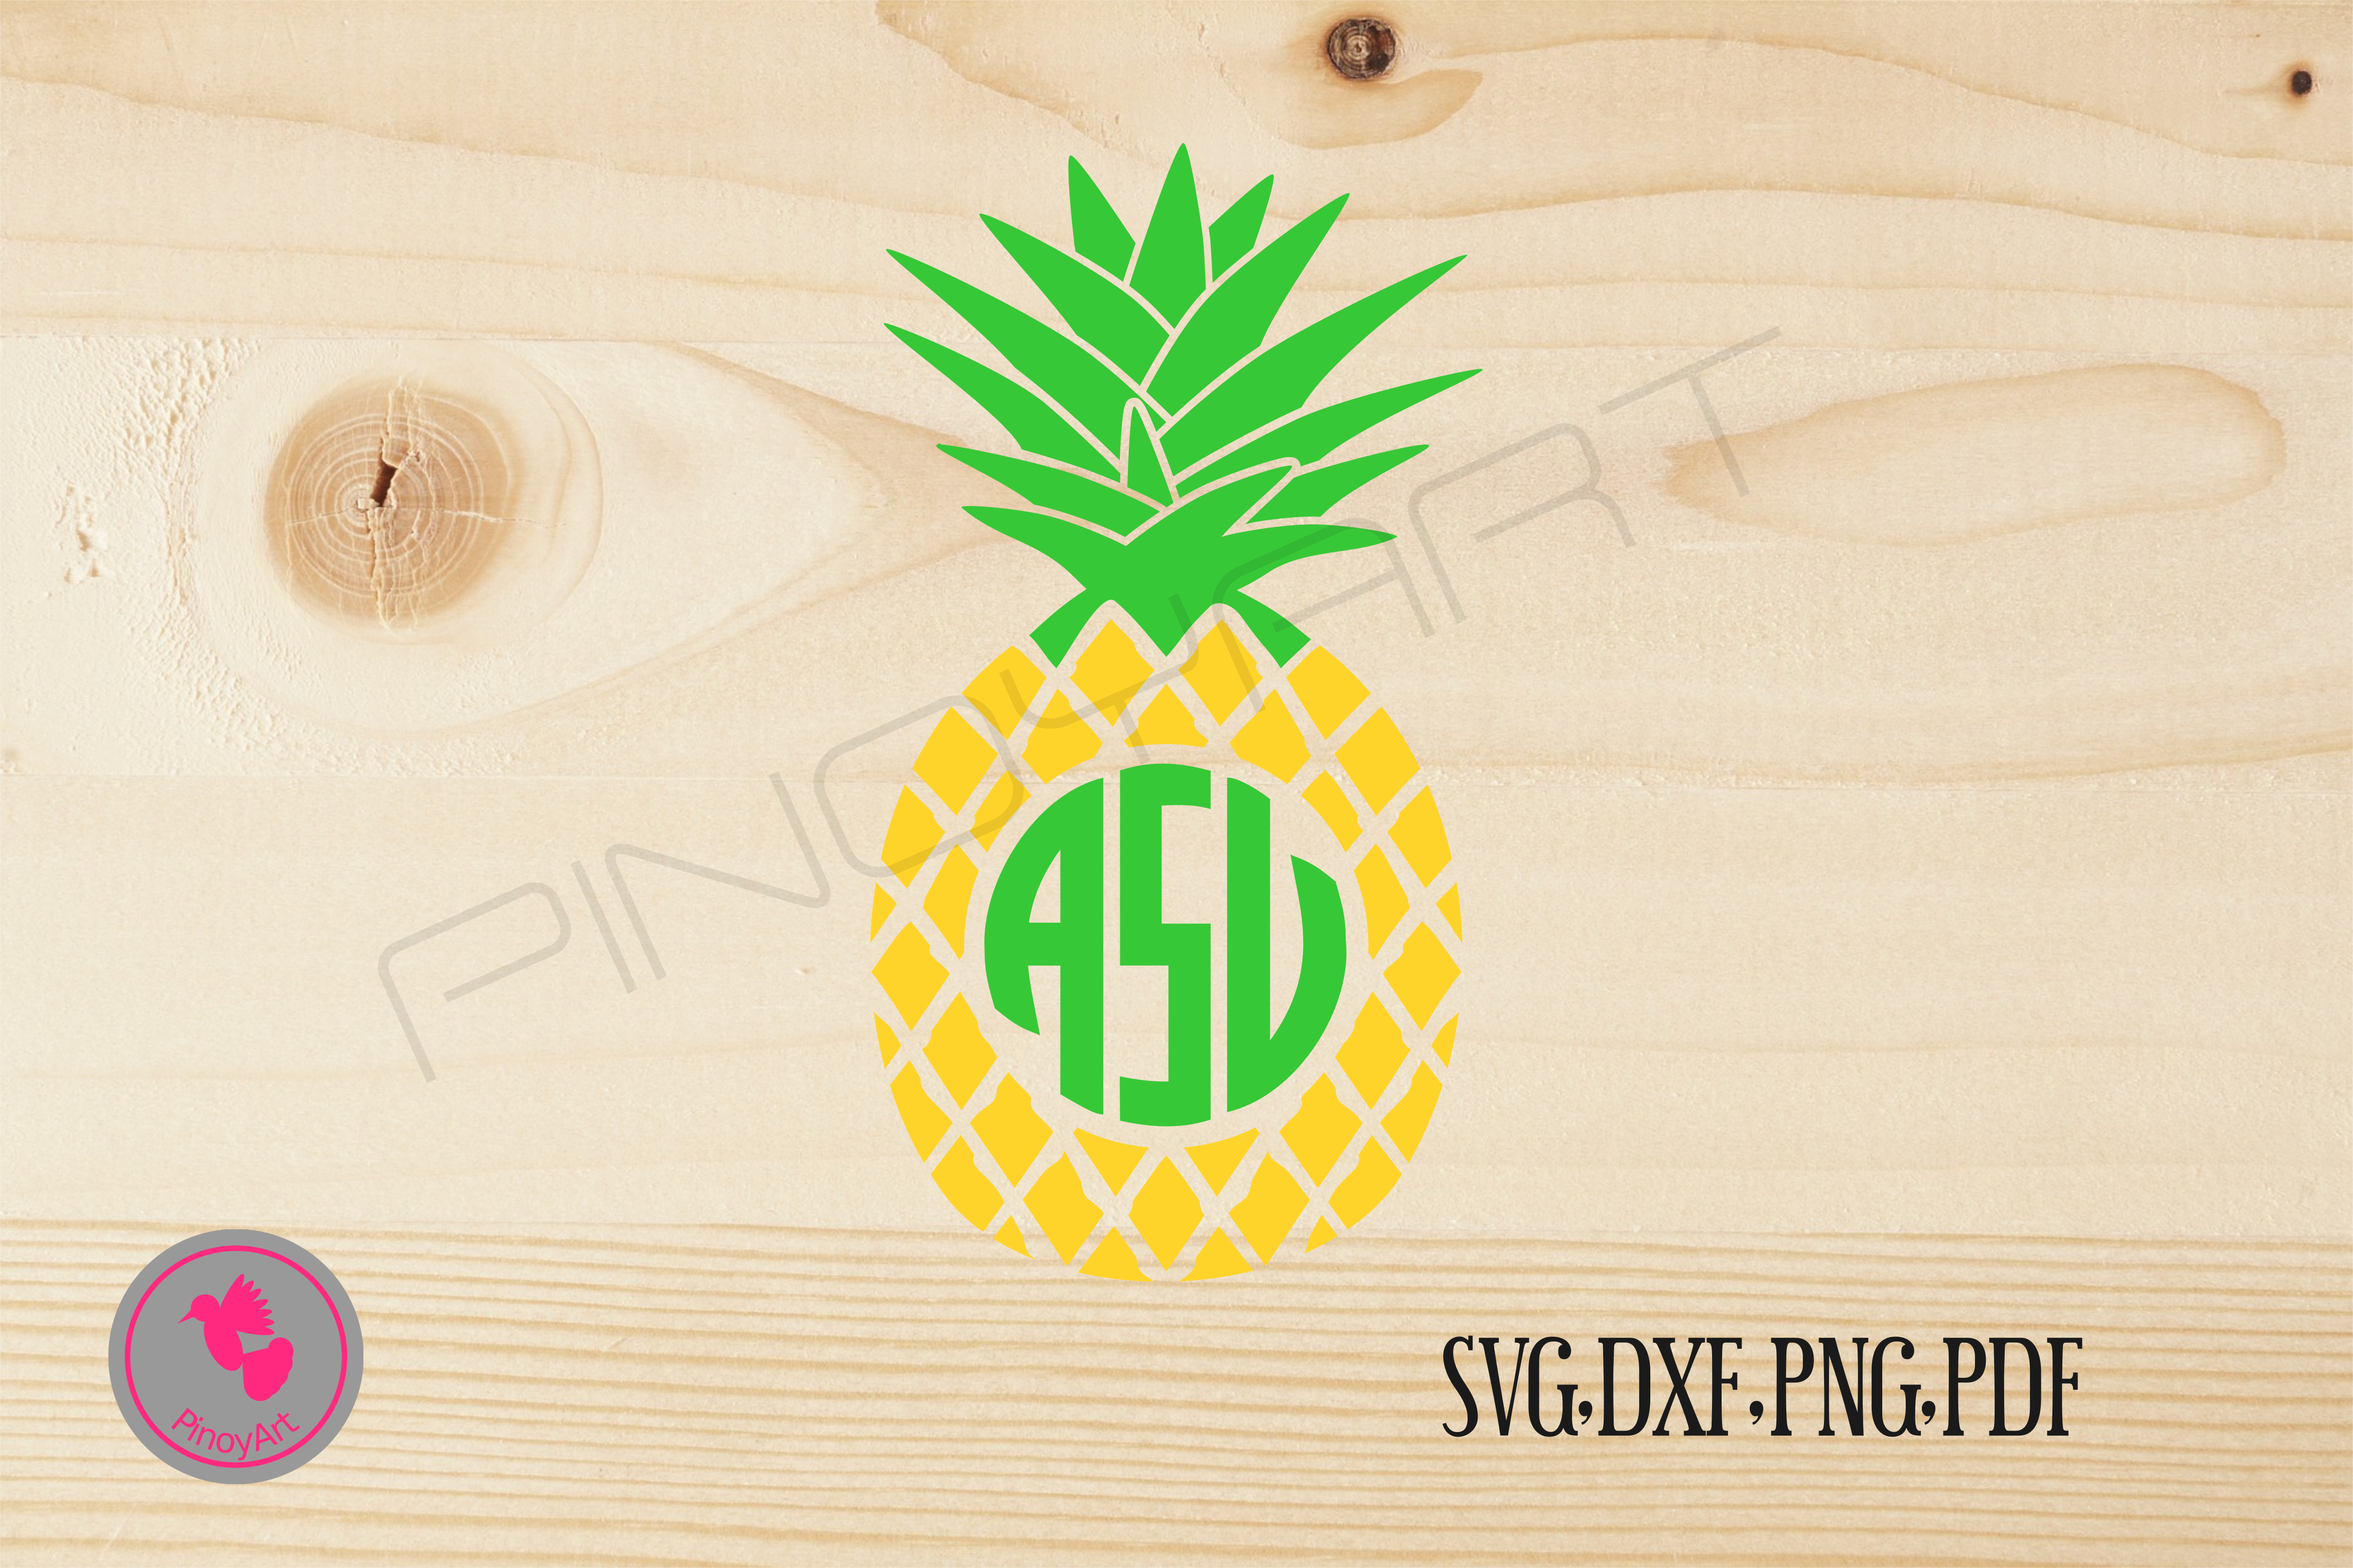 pineapple monogram svg free #262, Download drawings